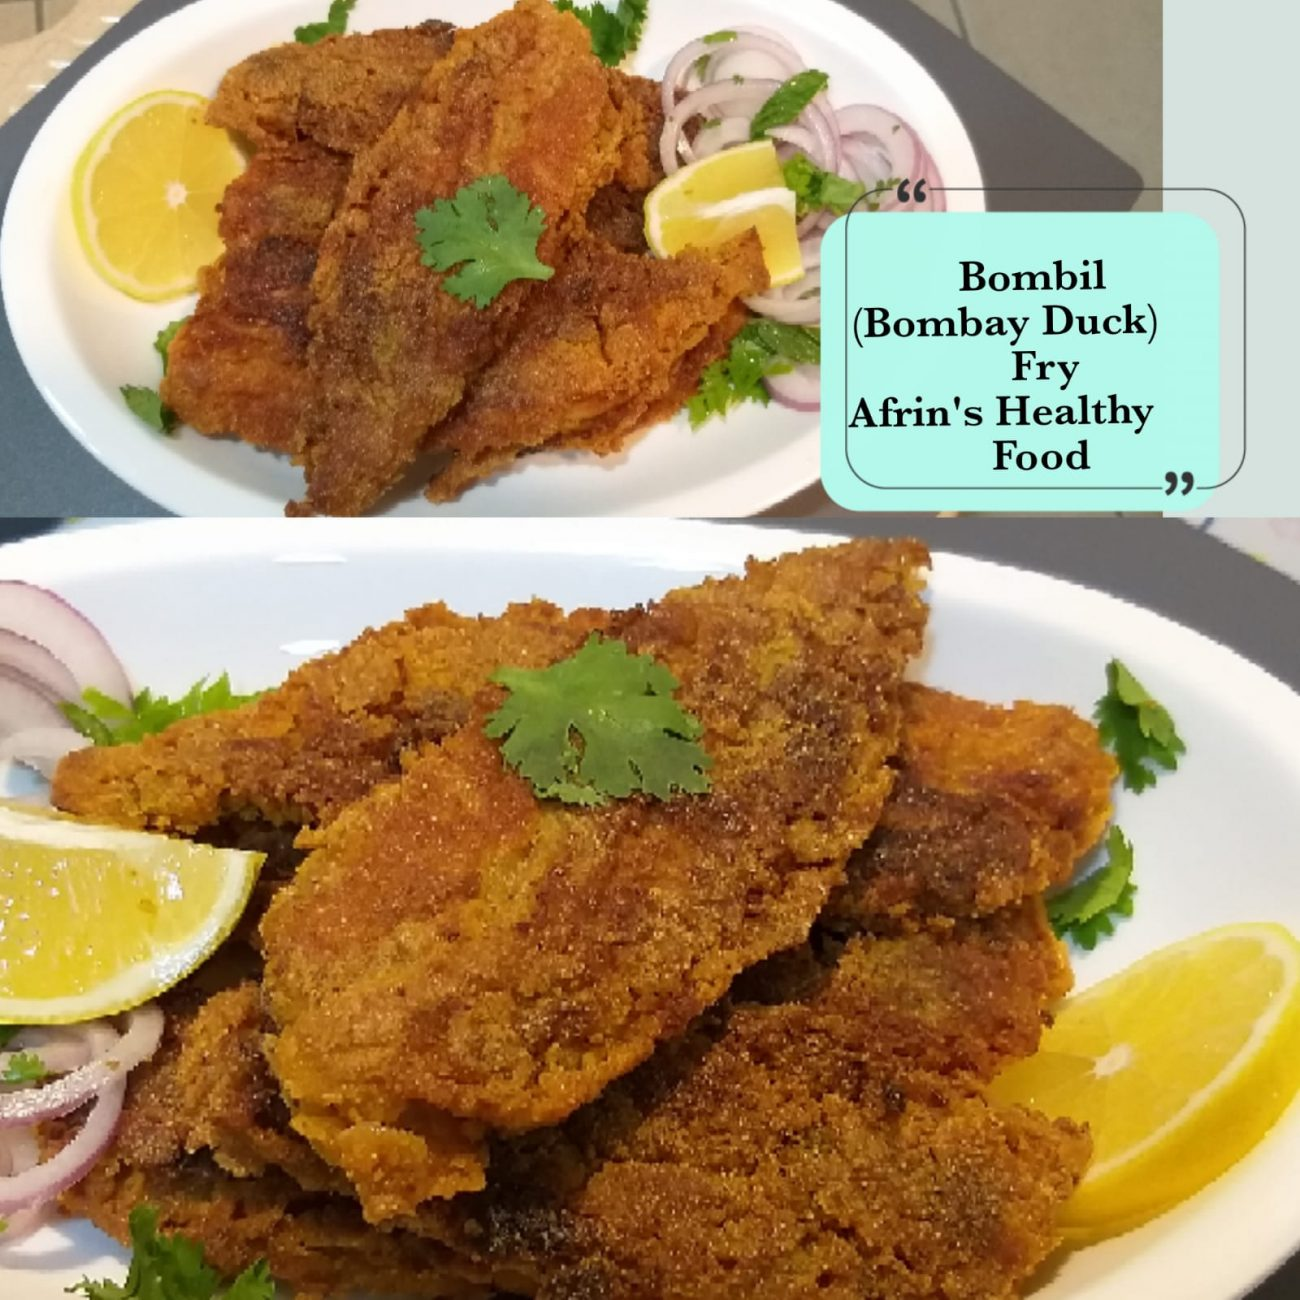 Bombil Fry – Spicy, crisp and extremely tasty are these fried Bombay ducks or bombils.